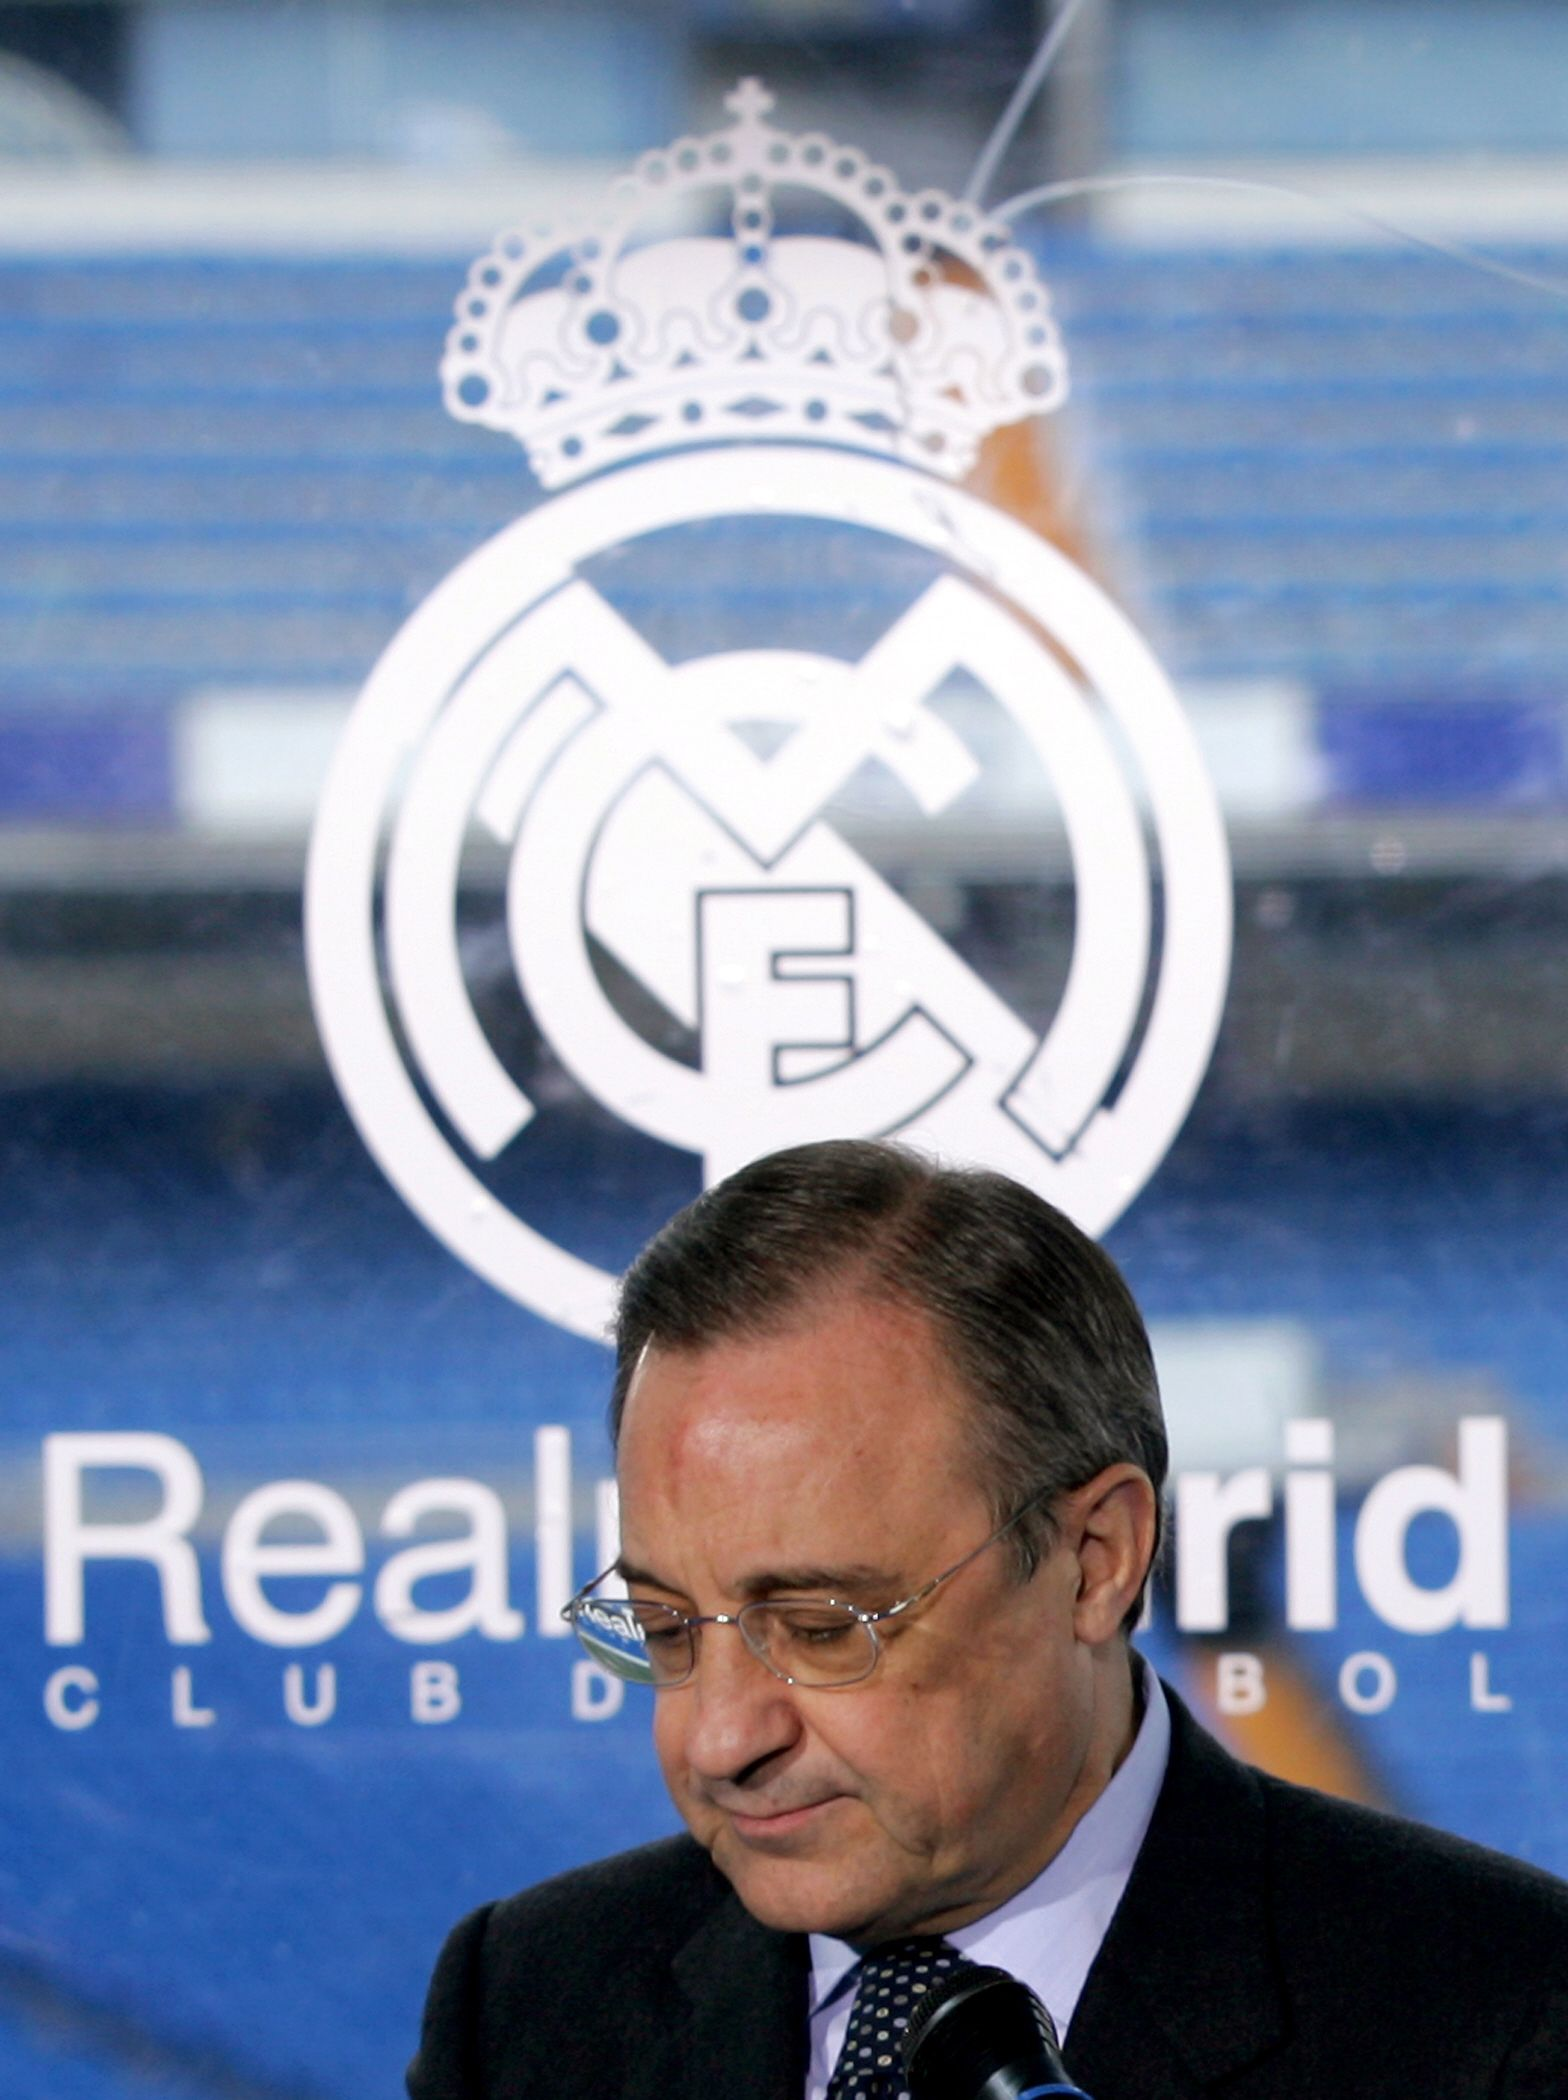 FILES-FBL-SPAIN-REAL MADRID-PEREZ